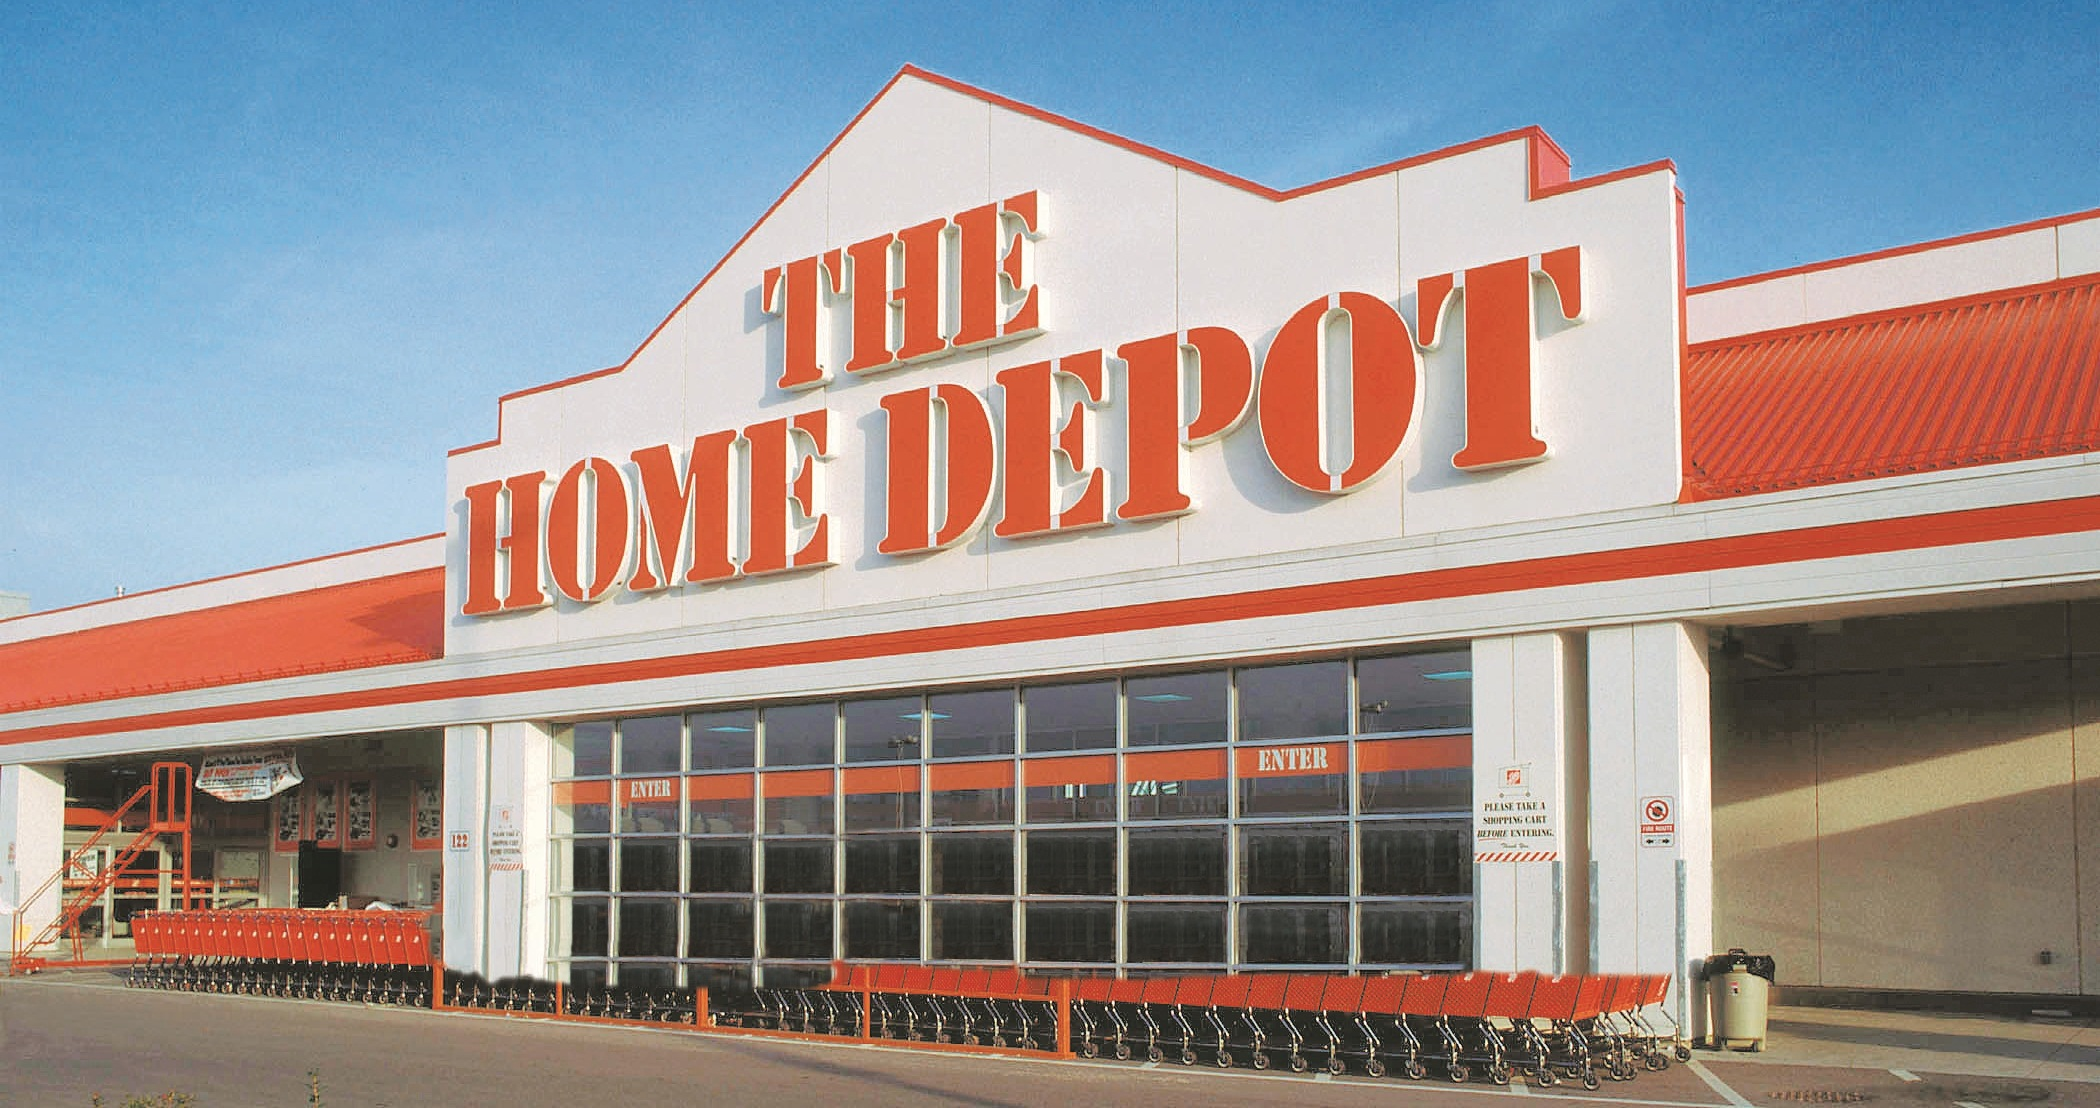 History of Home depot